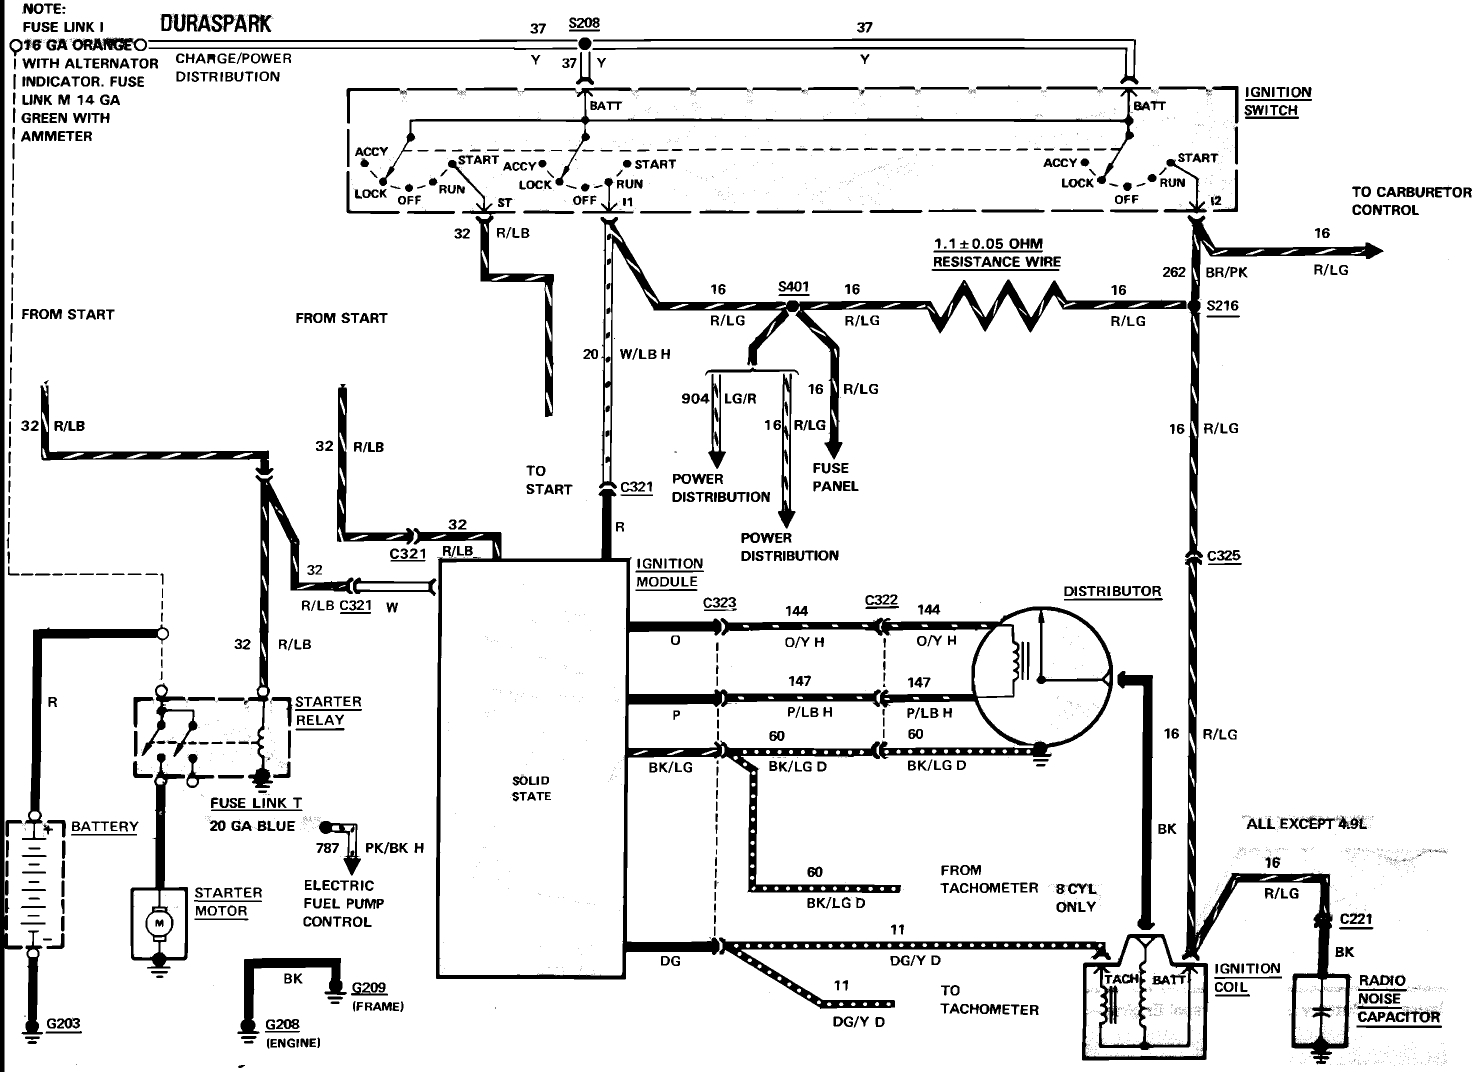 1989 ford F150 Ignition Wiring Diagram | Free Wiring Diagram